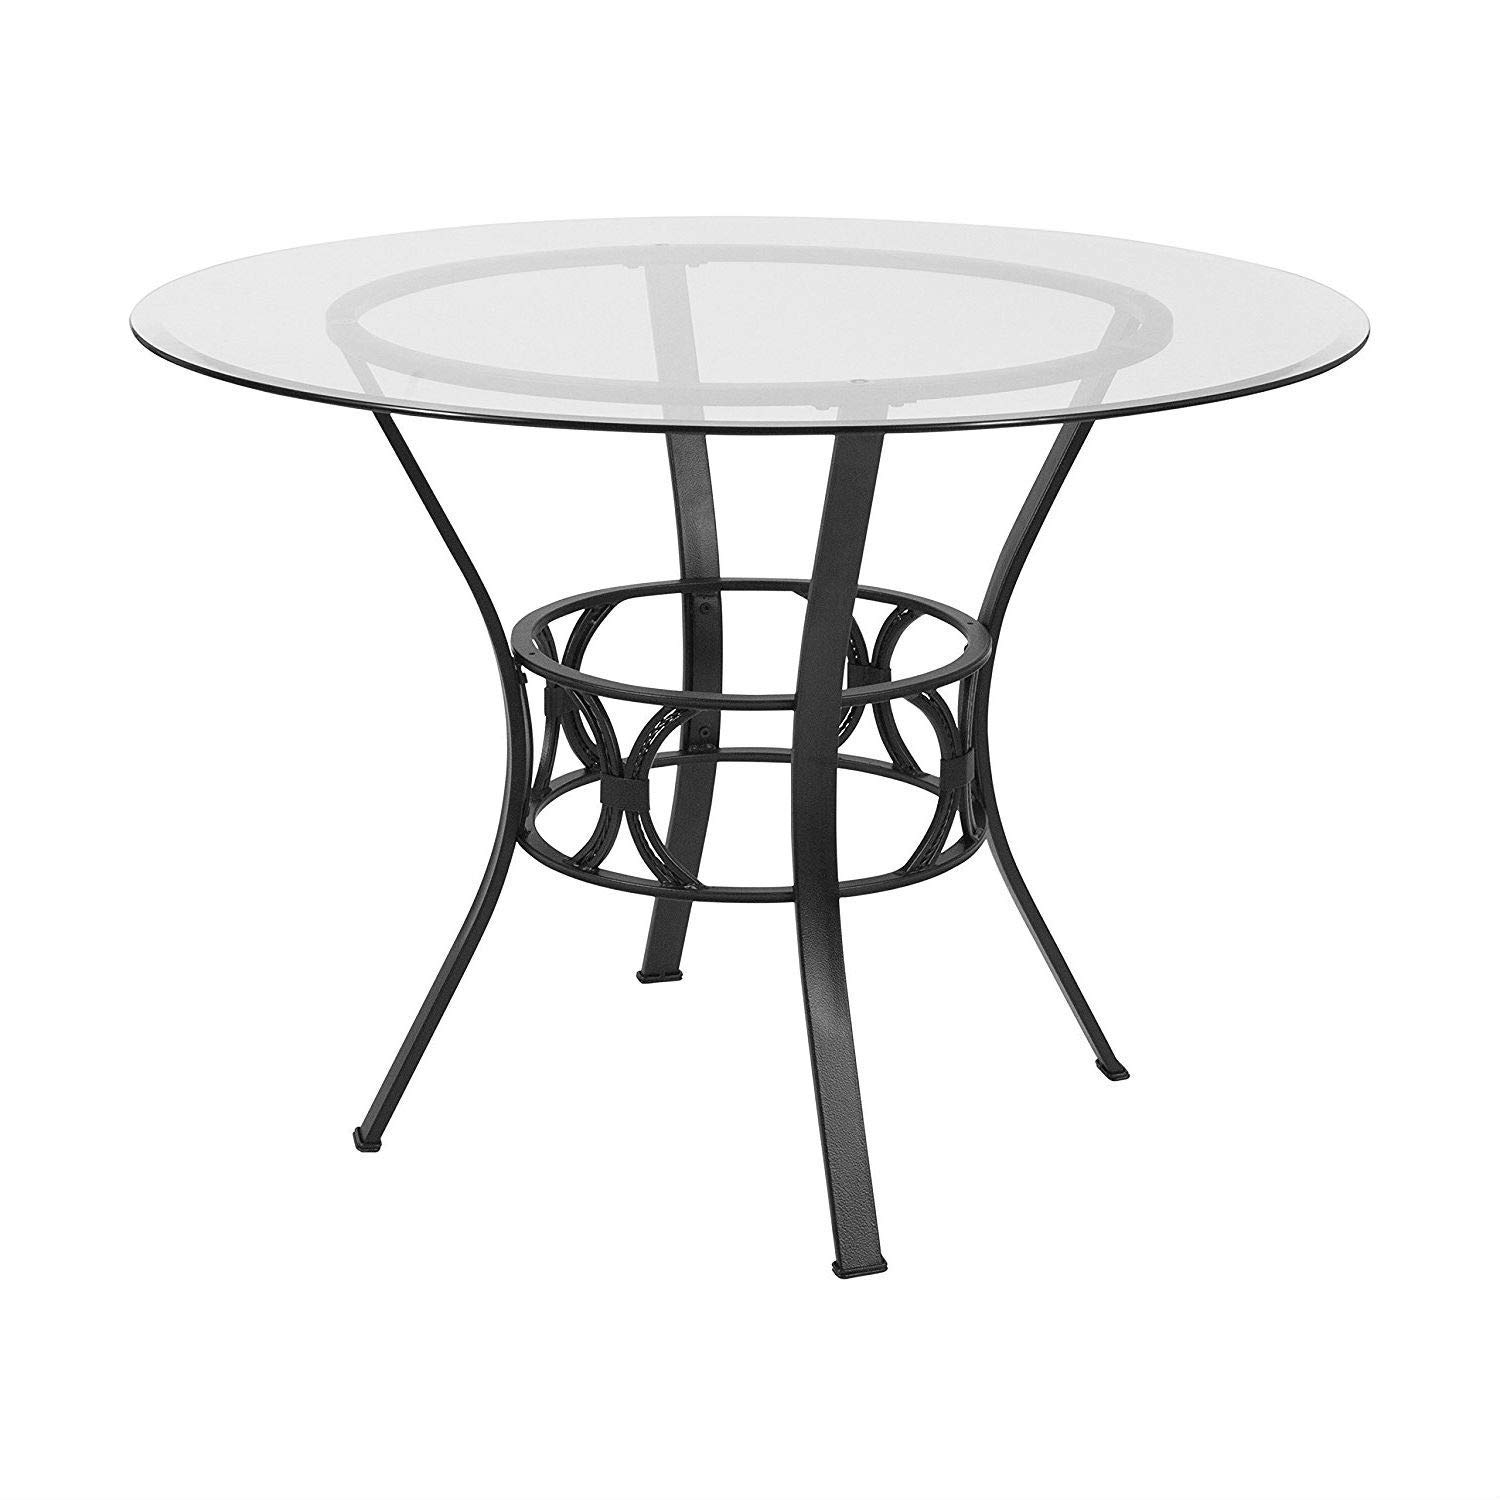 BeUniqueToday Round 42-inch Glass Dining Table with Metal Frame in Black Finish, Dining Table with Metal Frame in Black Finish That Will Add an Elegant Aspect to Your Eat-in Kitchen or Dining Room